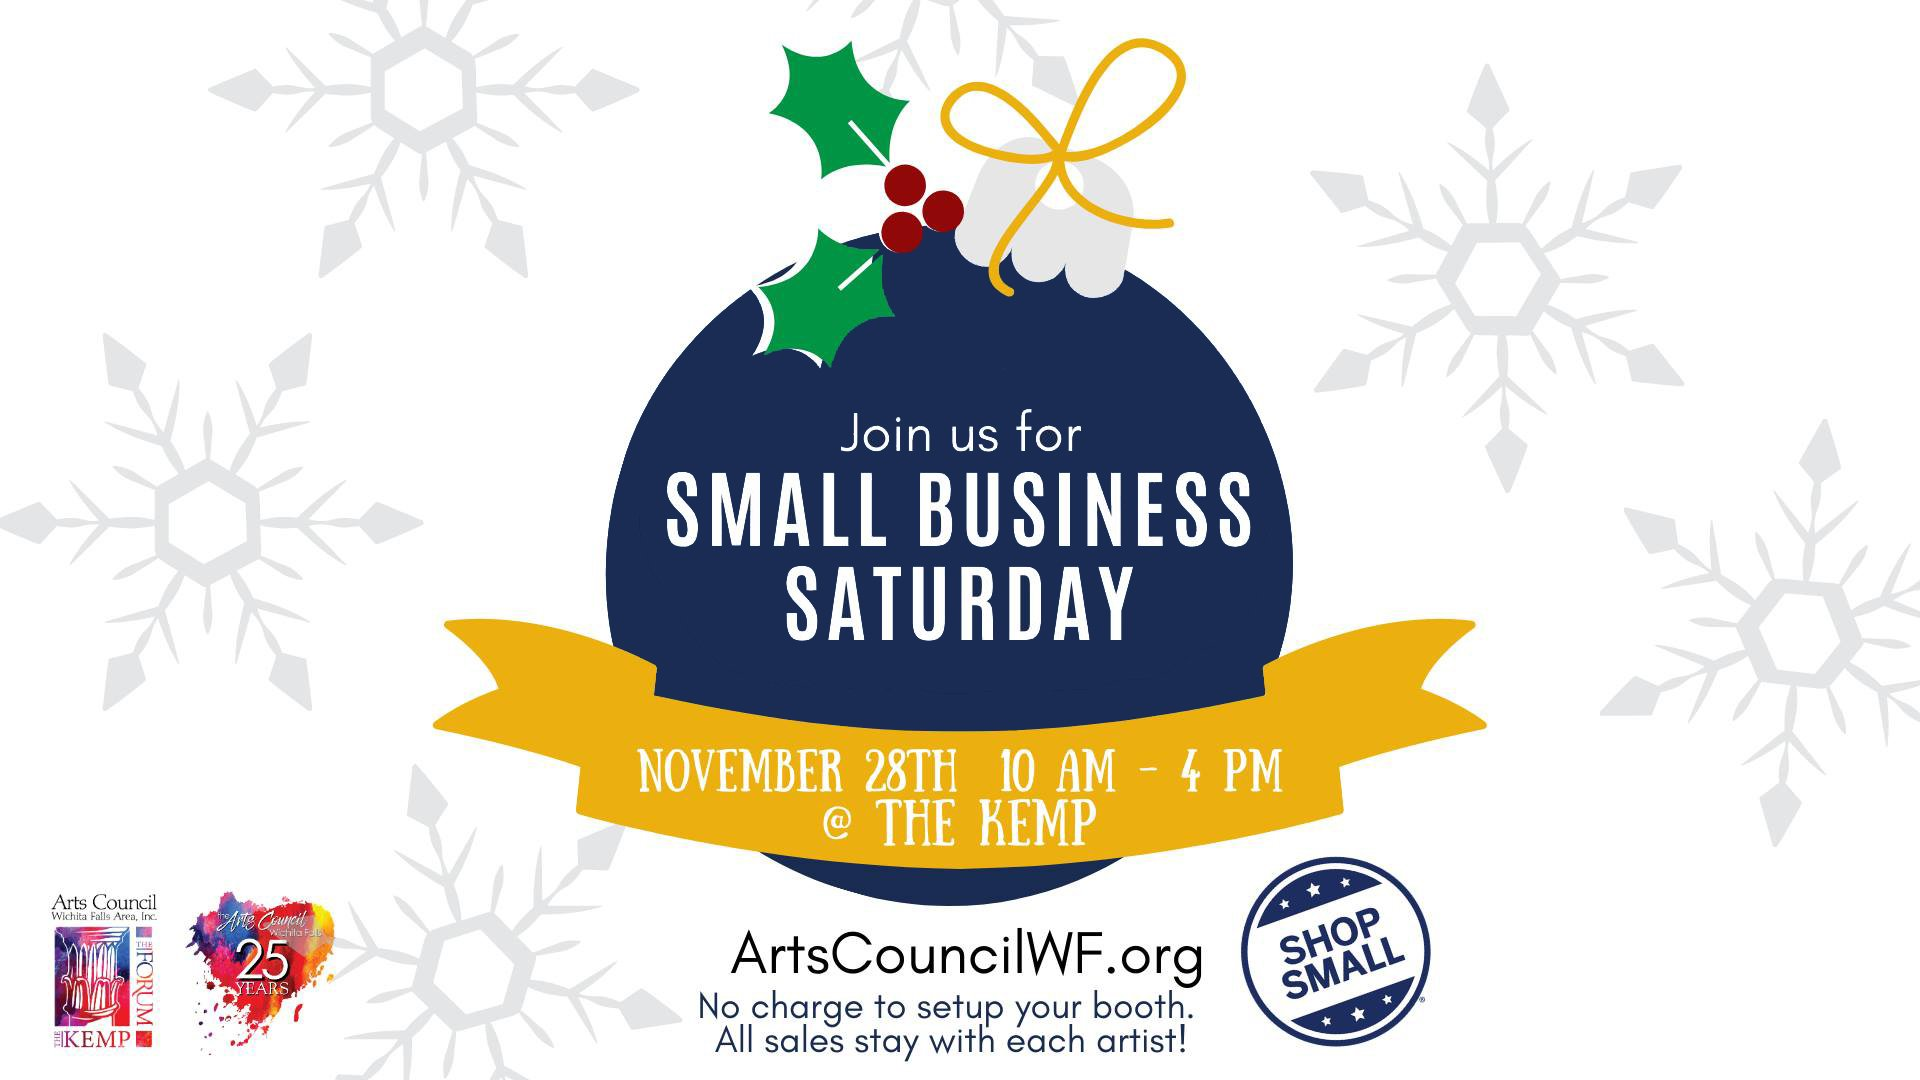 Small Business Saturday at The Kemp @ Kemp Center for the Arts